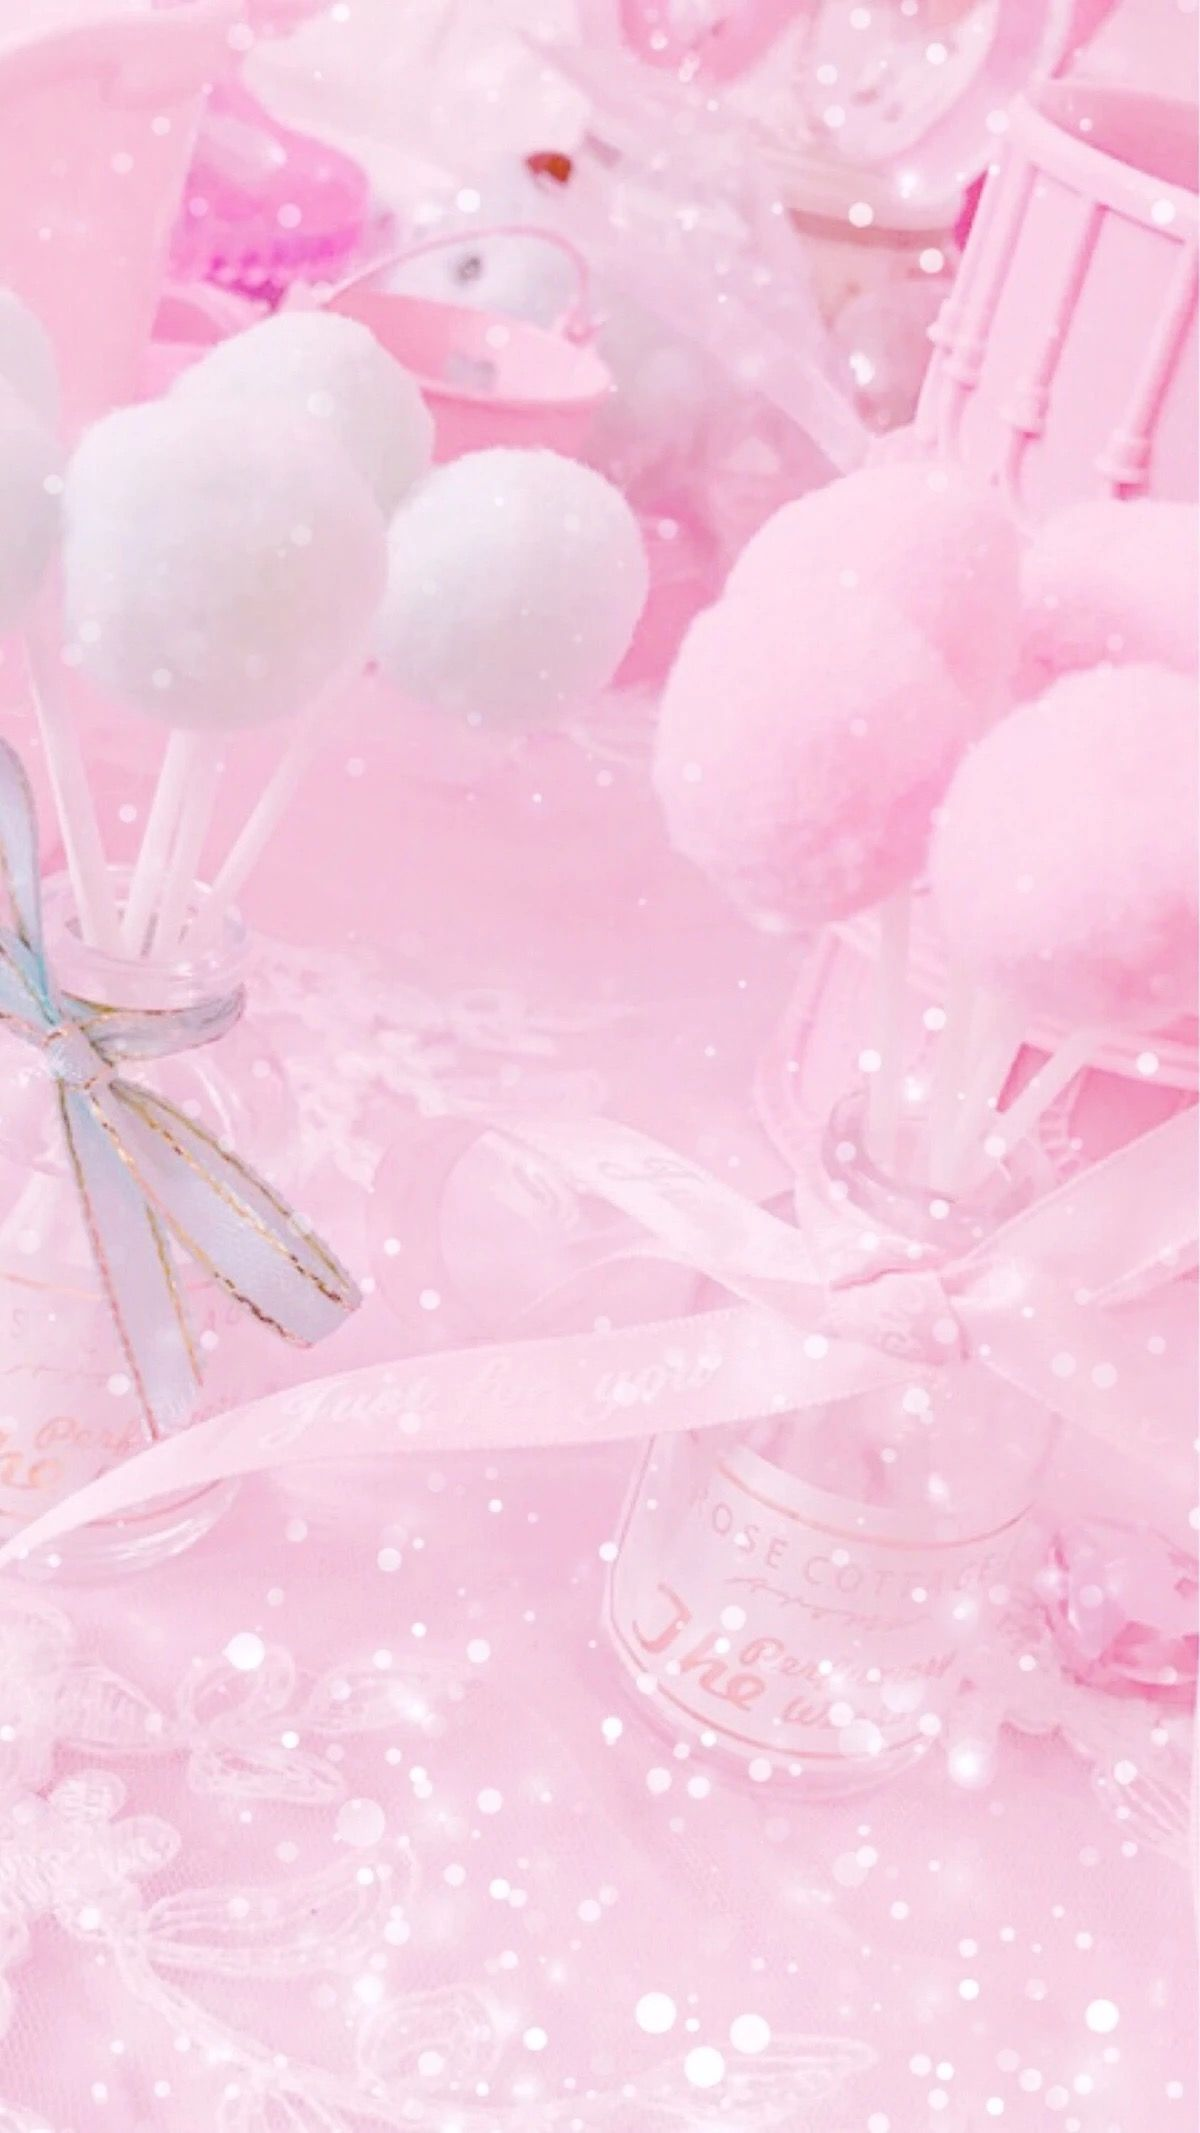 Pastel Pink Cute Wallpapers Top Free Pastel Pink Cute Backgrounds Wallpaperaccess Pikbest have found 237 great pastel pink backgrounds images for personal and commercial use. pastel pink cute wallpapers top free